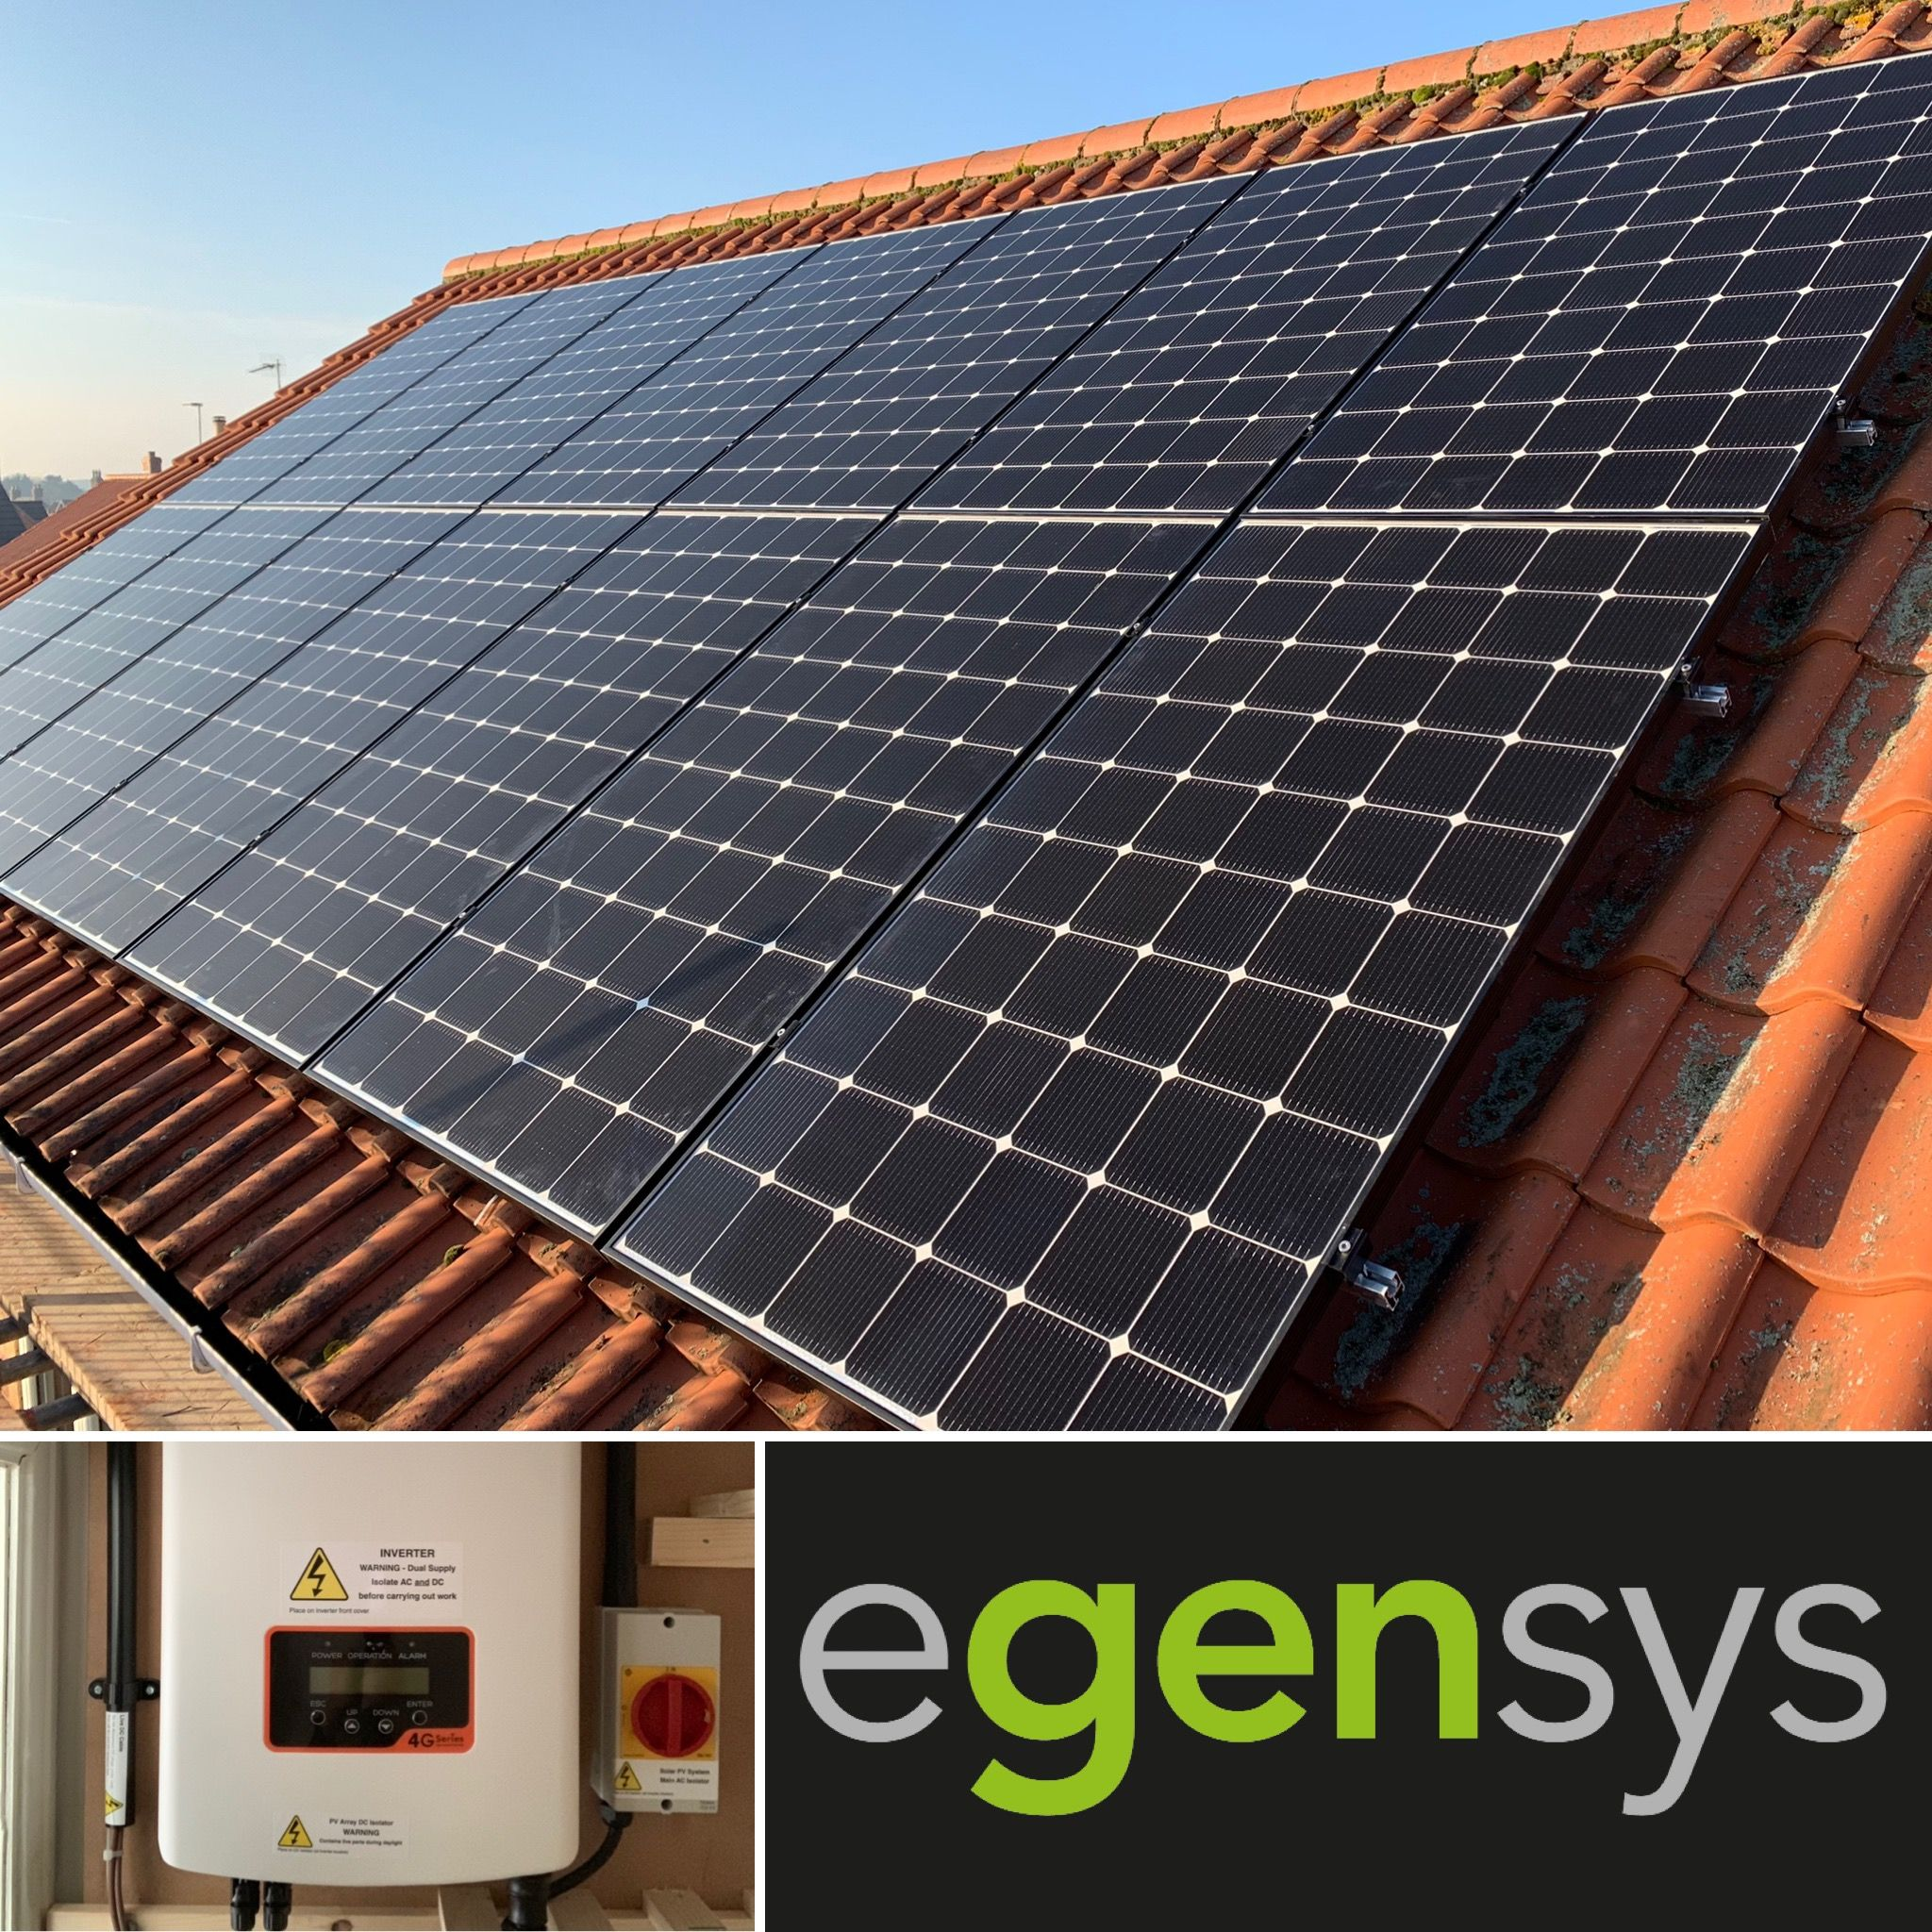 4 62kw Solar Panel System Using 14 Lg 330 Lg330n1c A5 Photovoltaic Modules With A Solis 3 6 Inverter Installed Solar Panel System Solar Photovoltaic Module